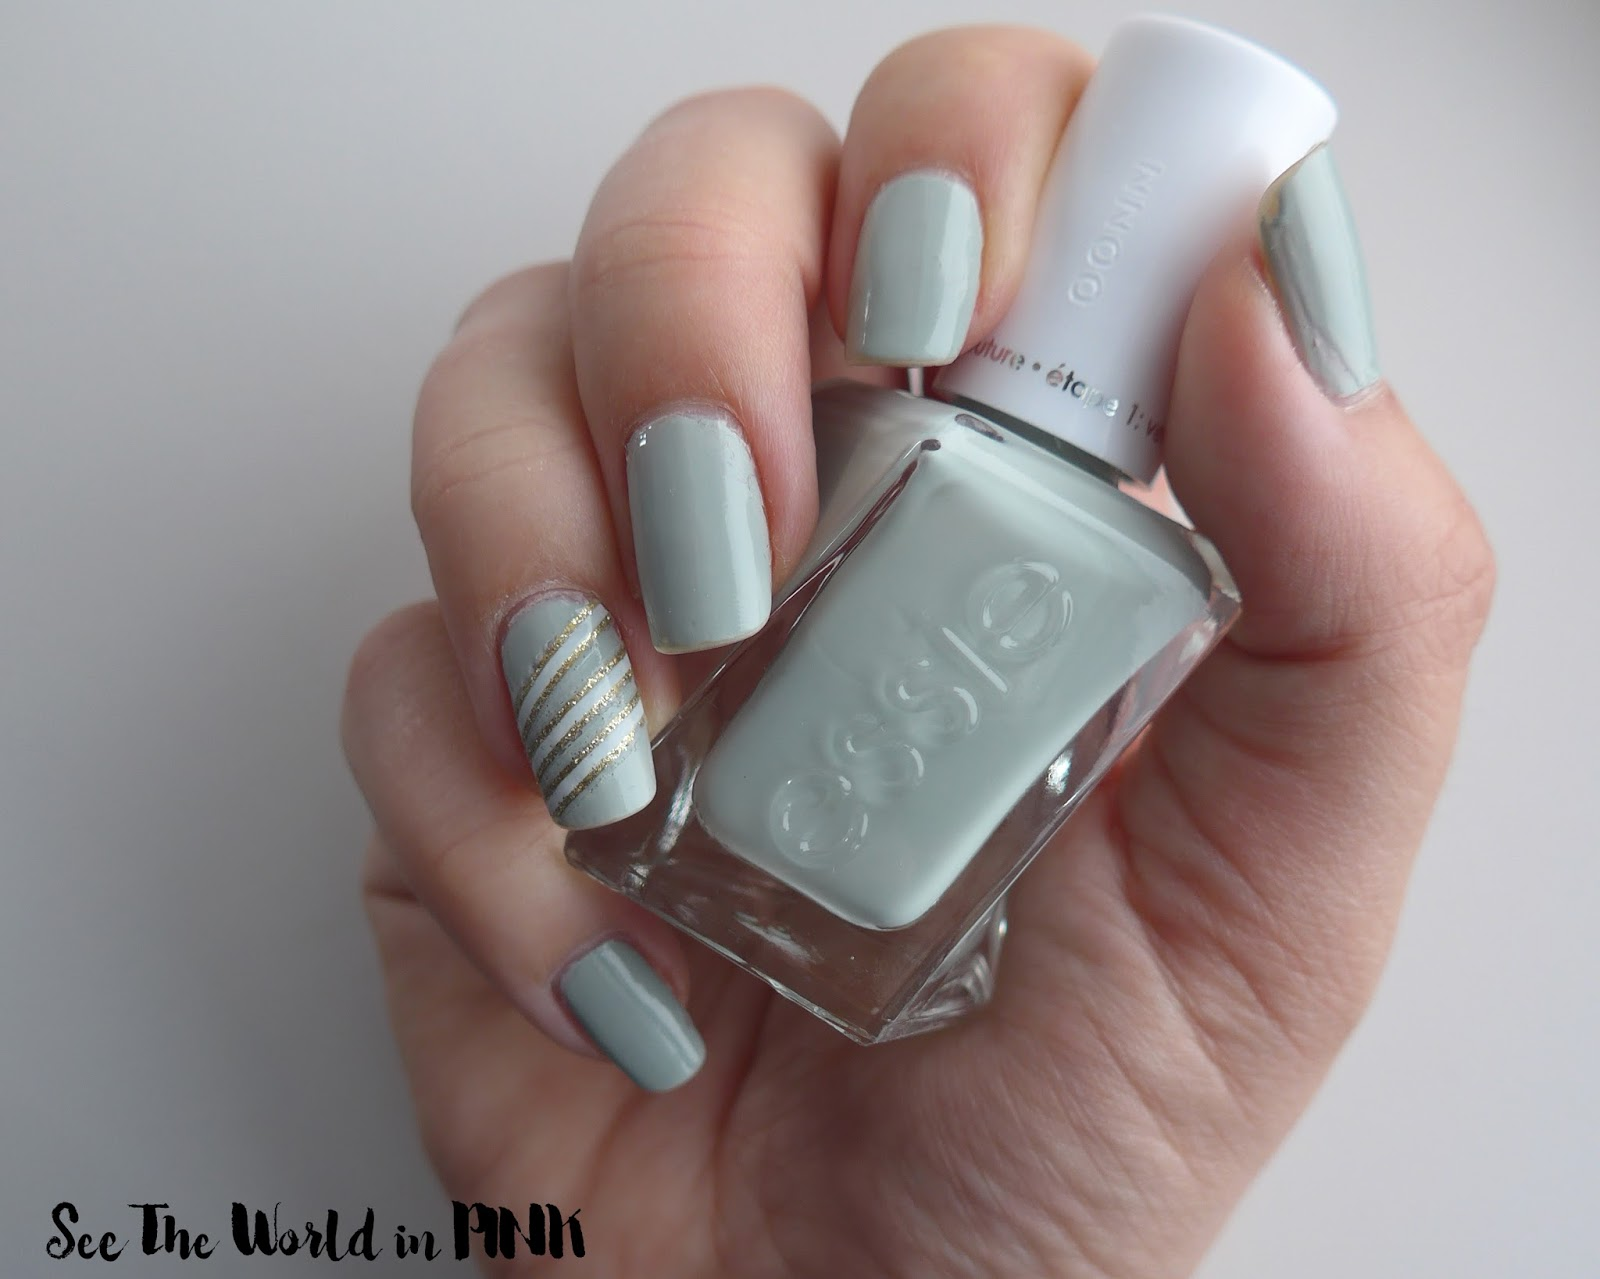 Manicure Monday - Essie Gel Couture Polish 1 Week Update!